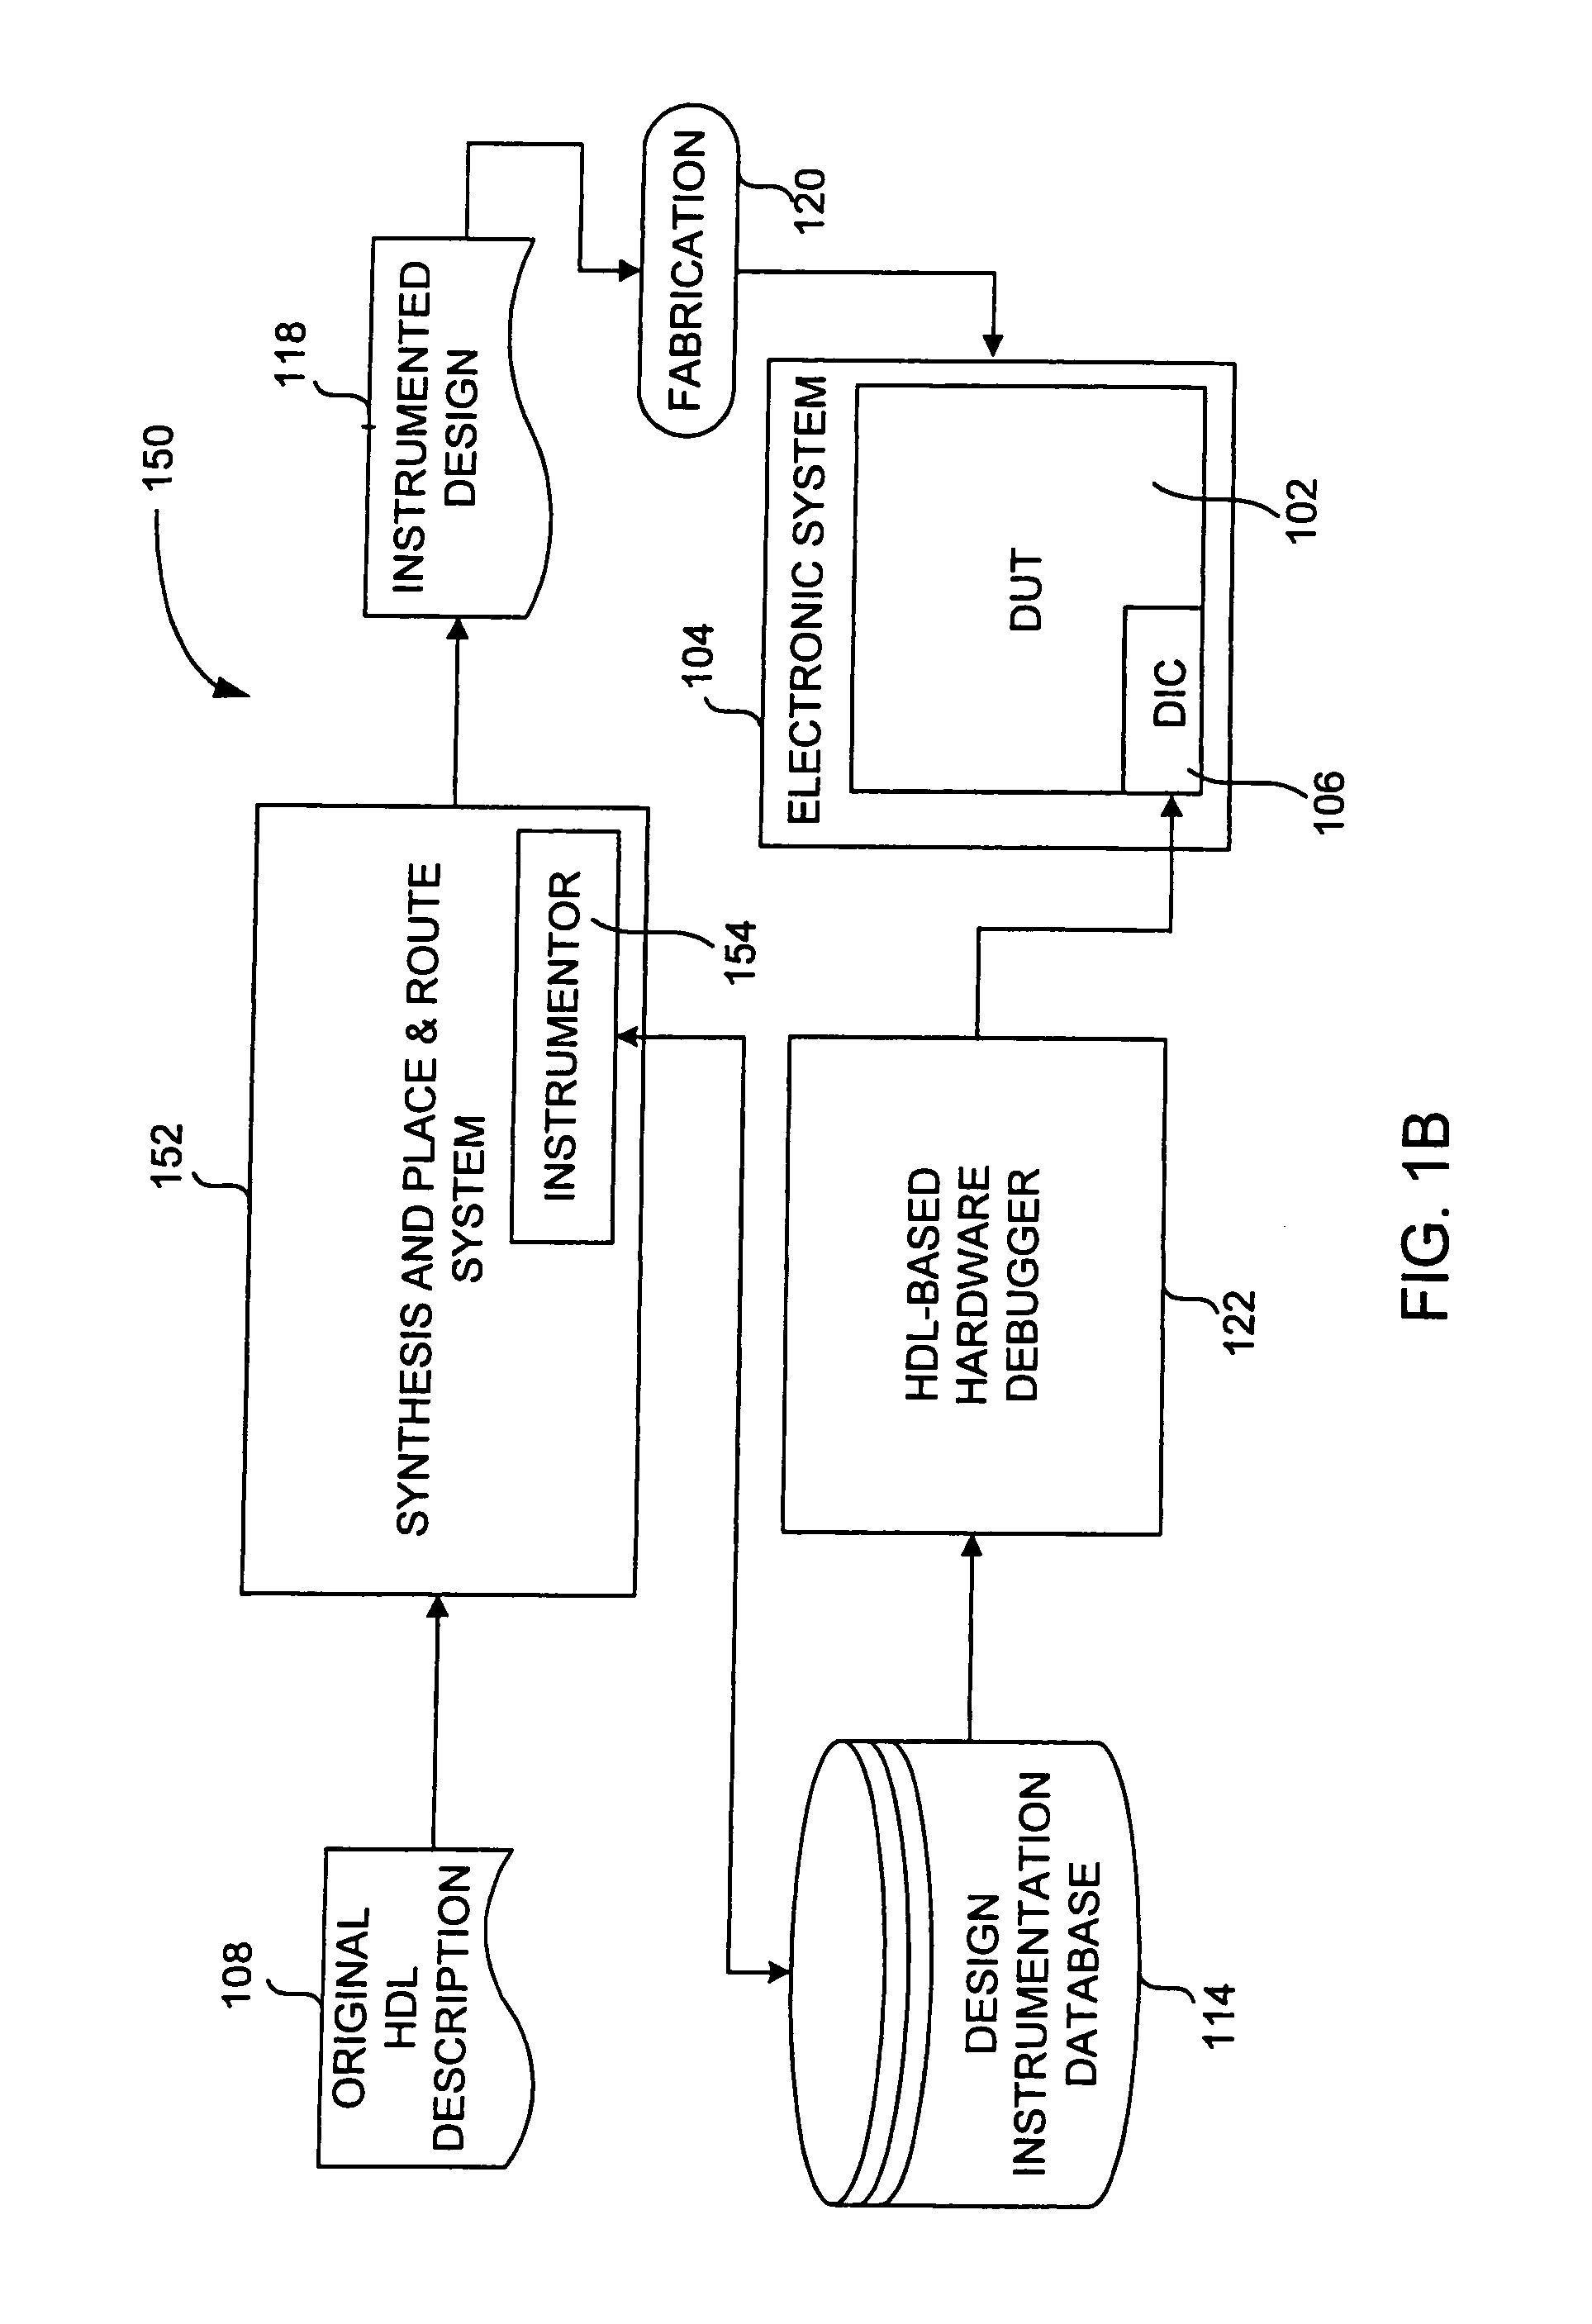 Patent Us7069526 Hardware Debugging In A Description Physical Target Block Diagram Photo Drawing